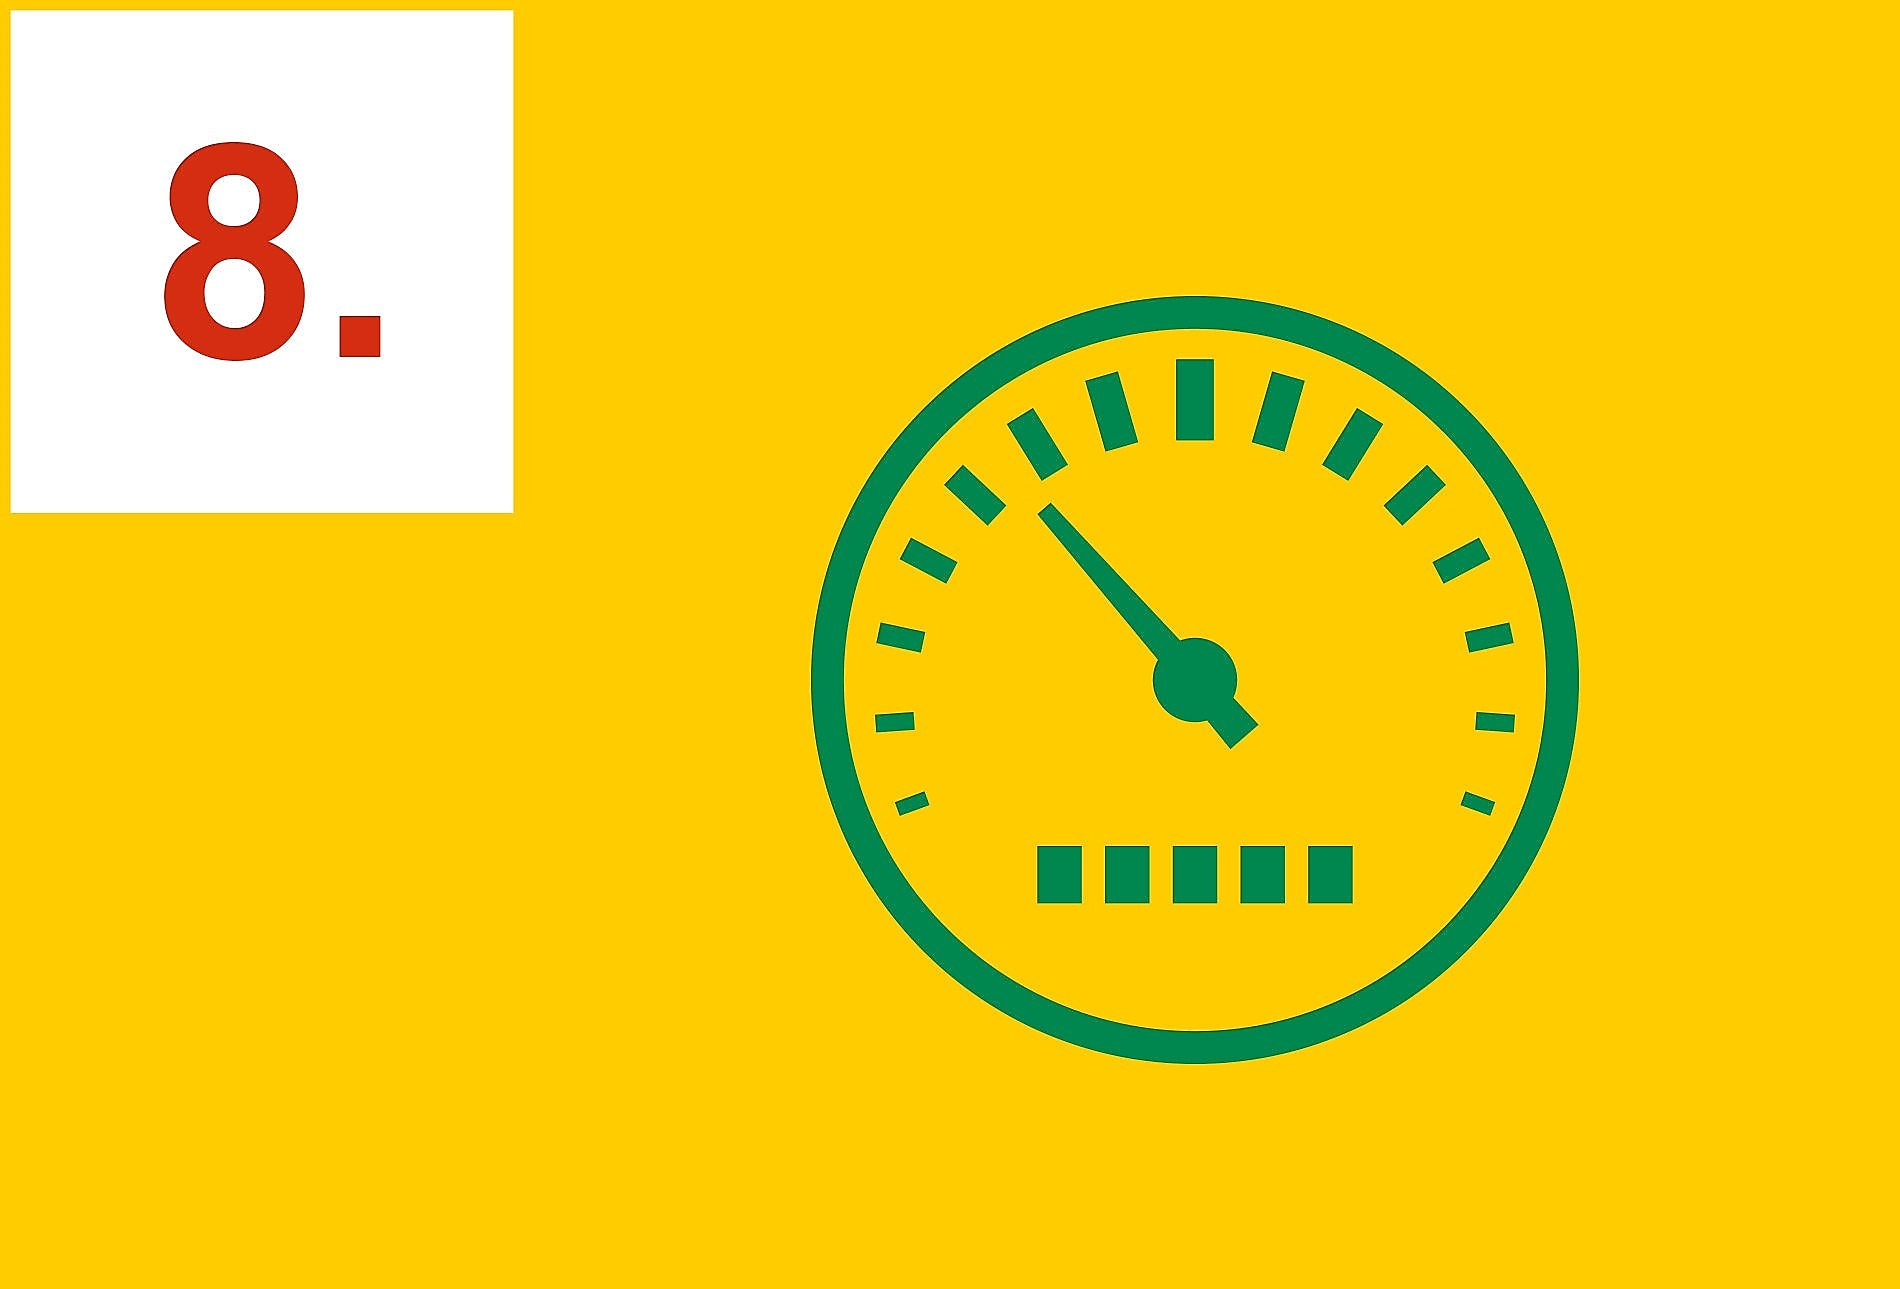 Green speedometer on a yellow background